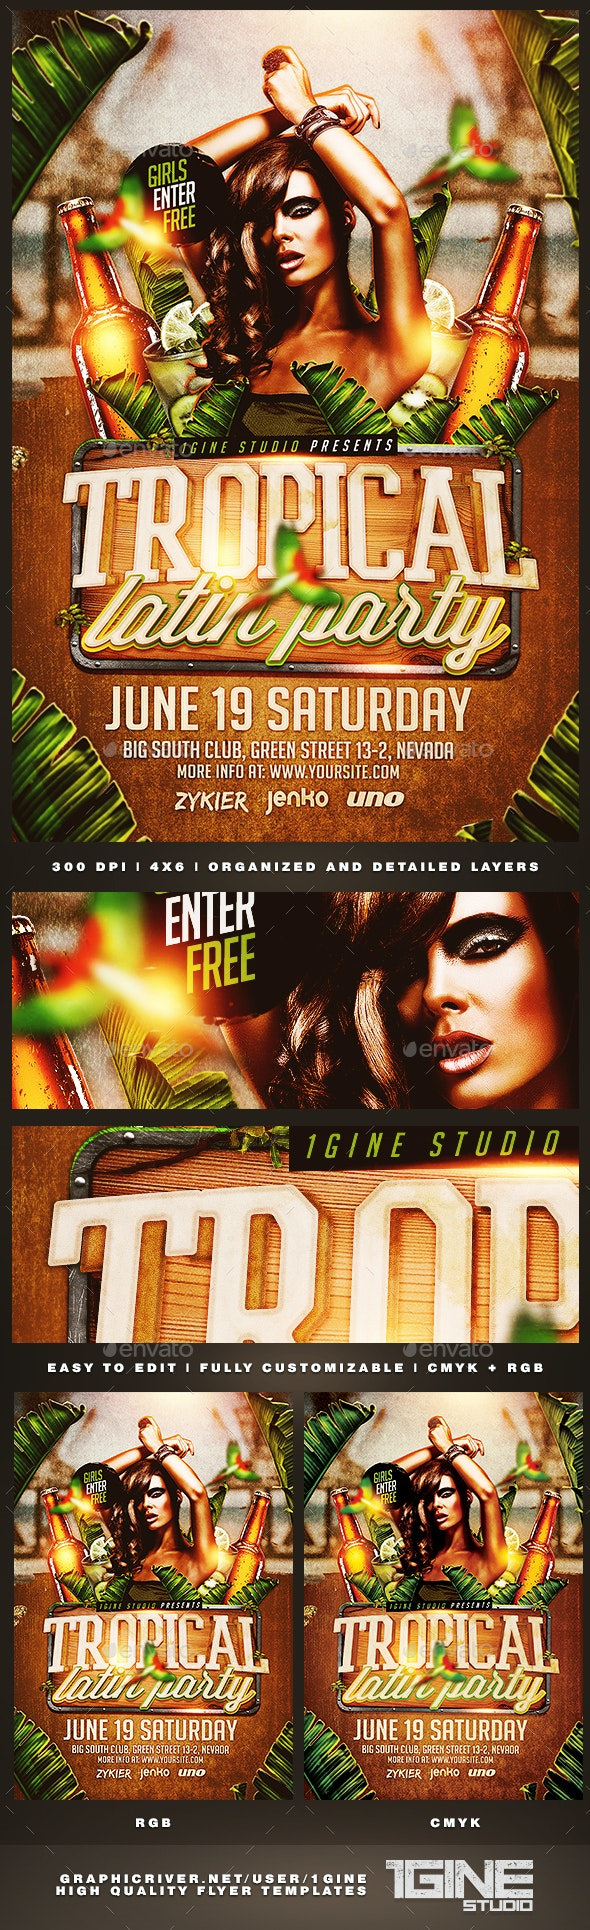 Tropical Latin Party Flyer Template - Clubs & Parties Events